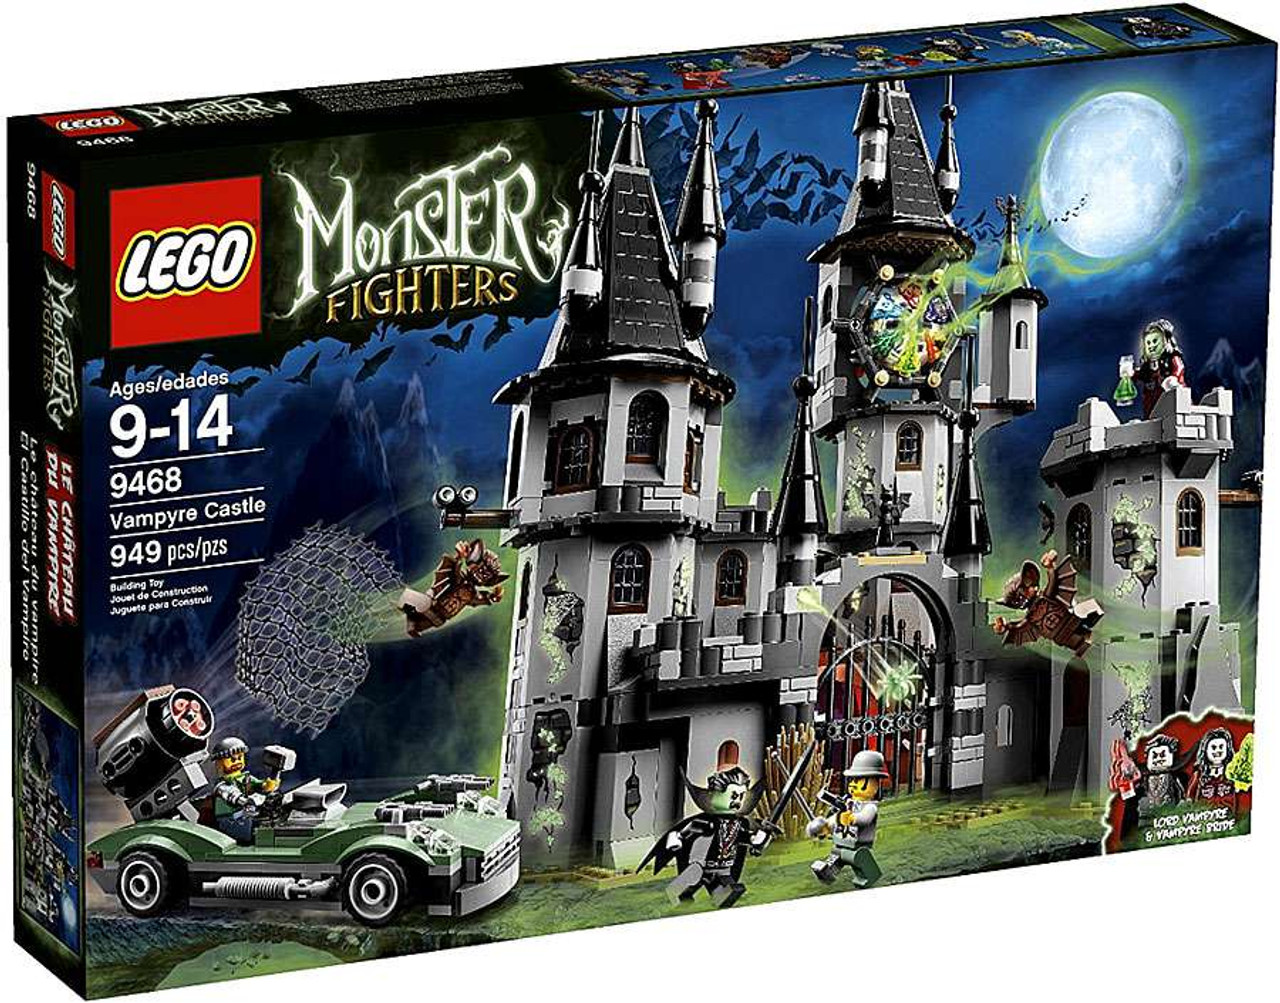 LEGO Monster Fighters The Vampyre Castle Set #9468